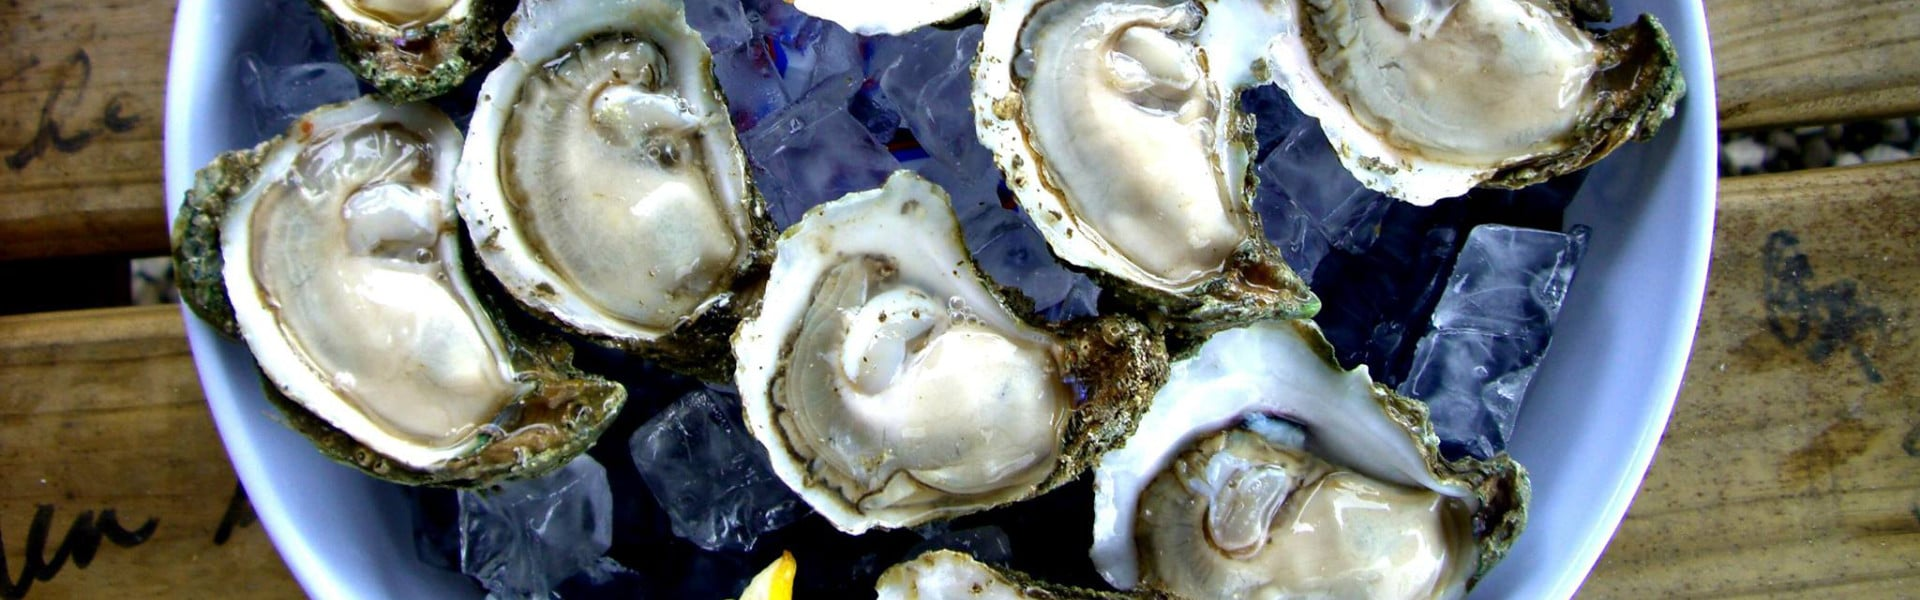 Fresh Dozen of Apalachicola Bay Oysters